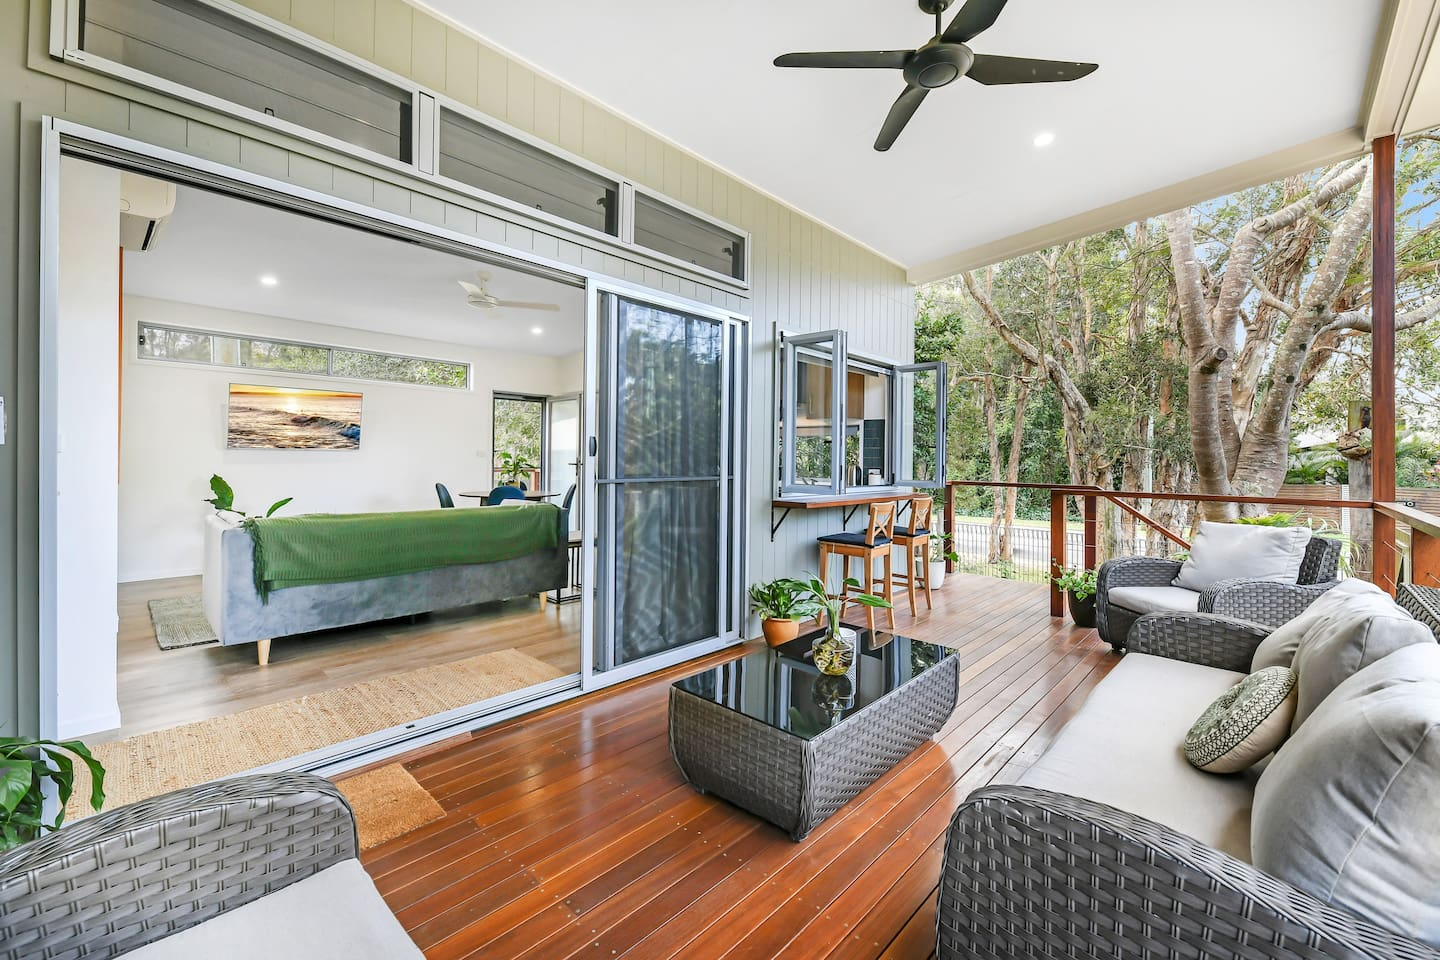 Enjoy the open planned living area which is a perfect place to relax and unwind after a day at the beach or enjoy a morning coffee listening to the local bird life